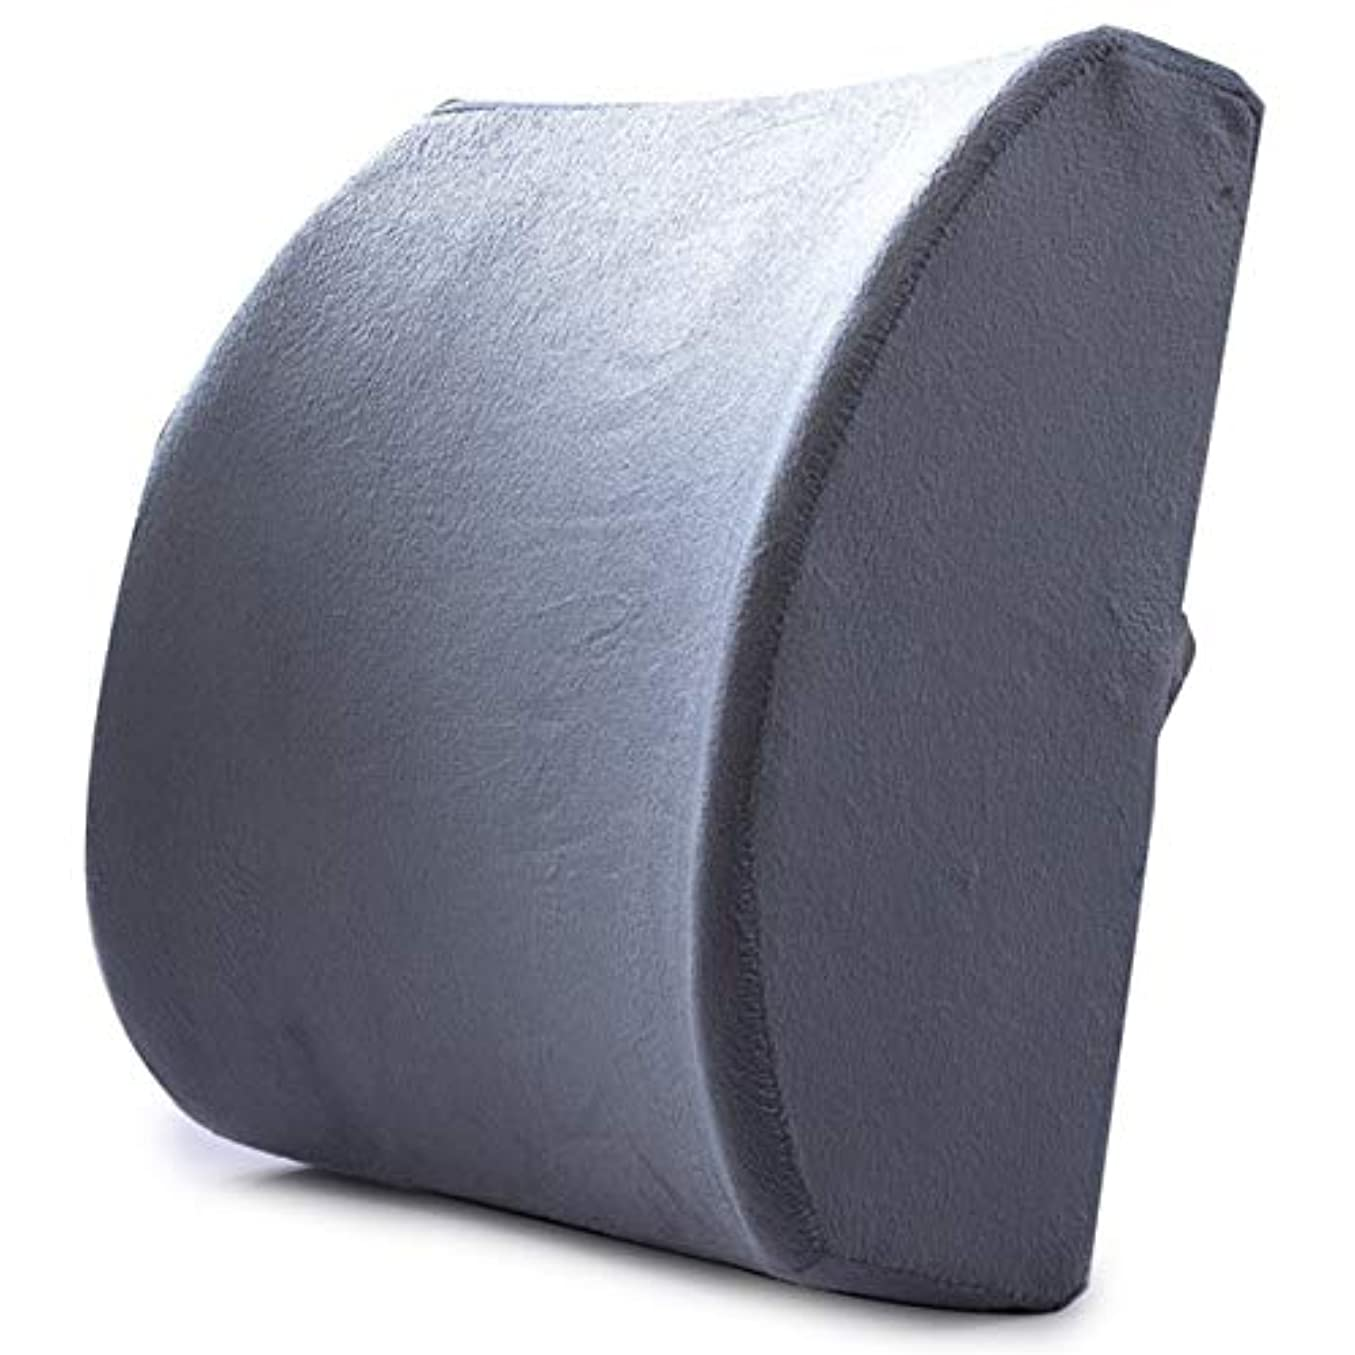 広く歌う動的Memory Foam Lumbar Support Waist Cushion Pillow For Chairs in the Car Seat Pillows Home Office Relieve Pain